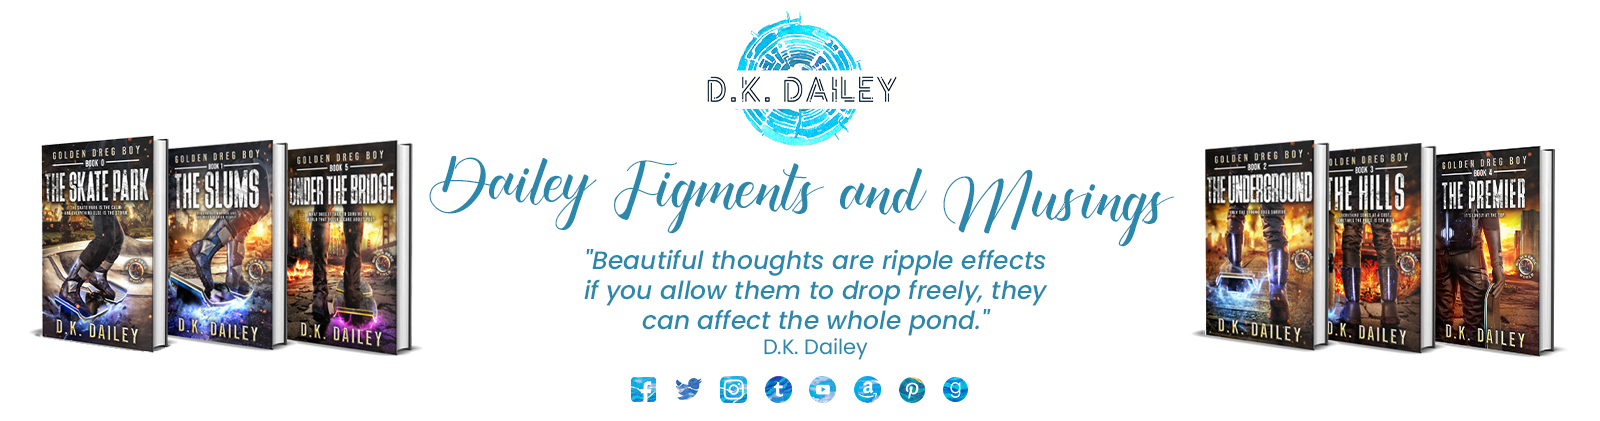 Dailey Figments and Musings